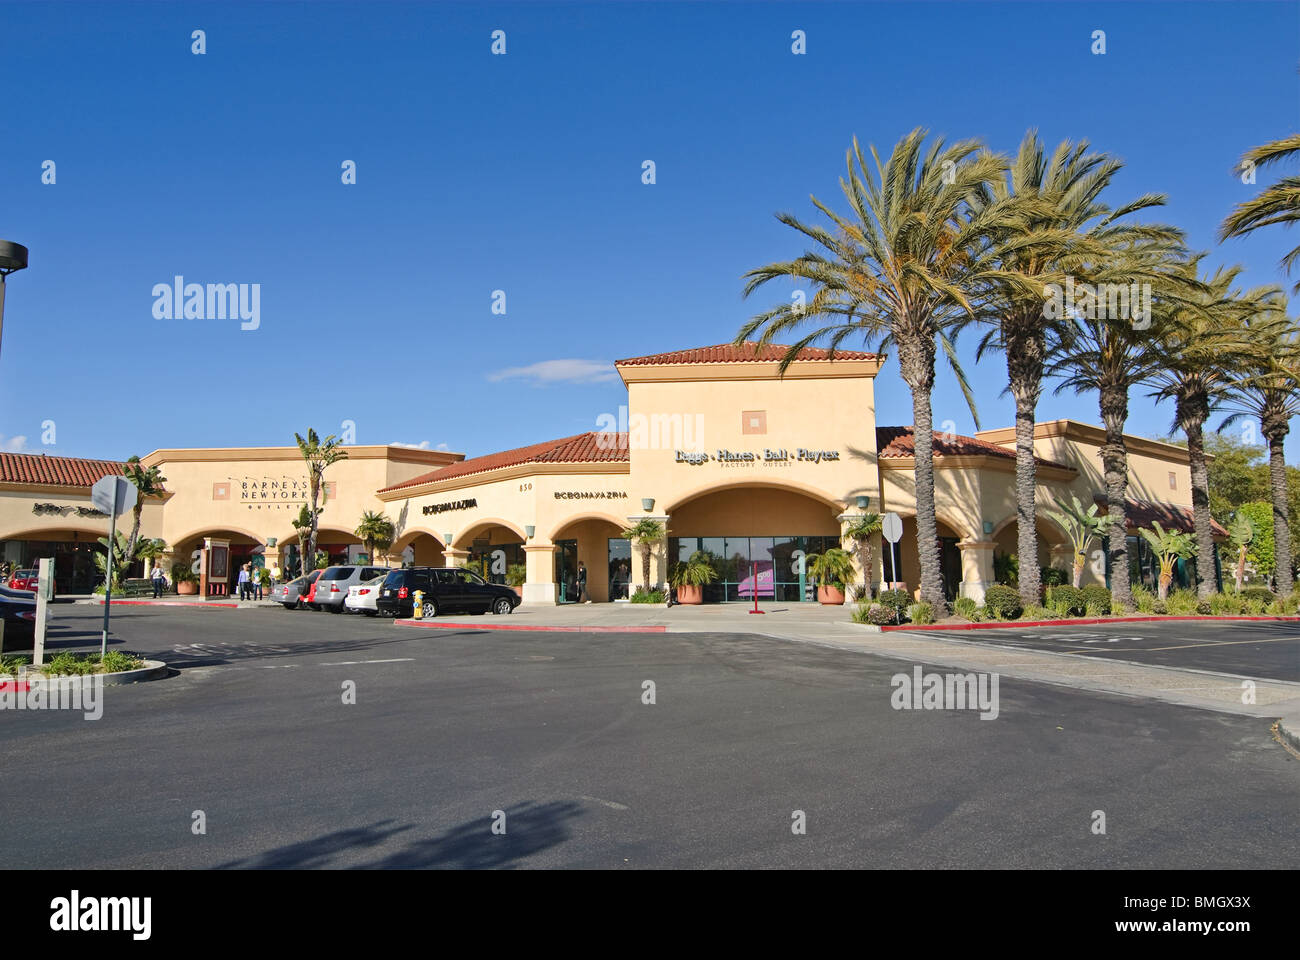 Camarillo premium outlets is a shopping center that brings together the finest brands in a unique outdoor environment